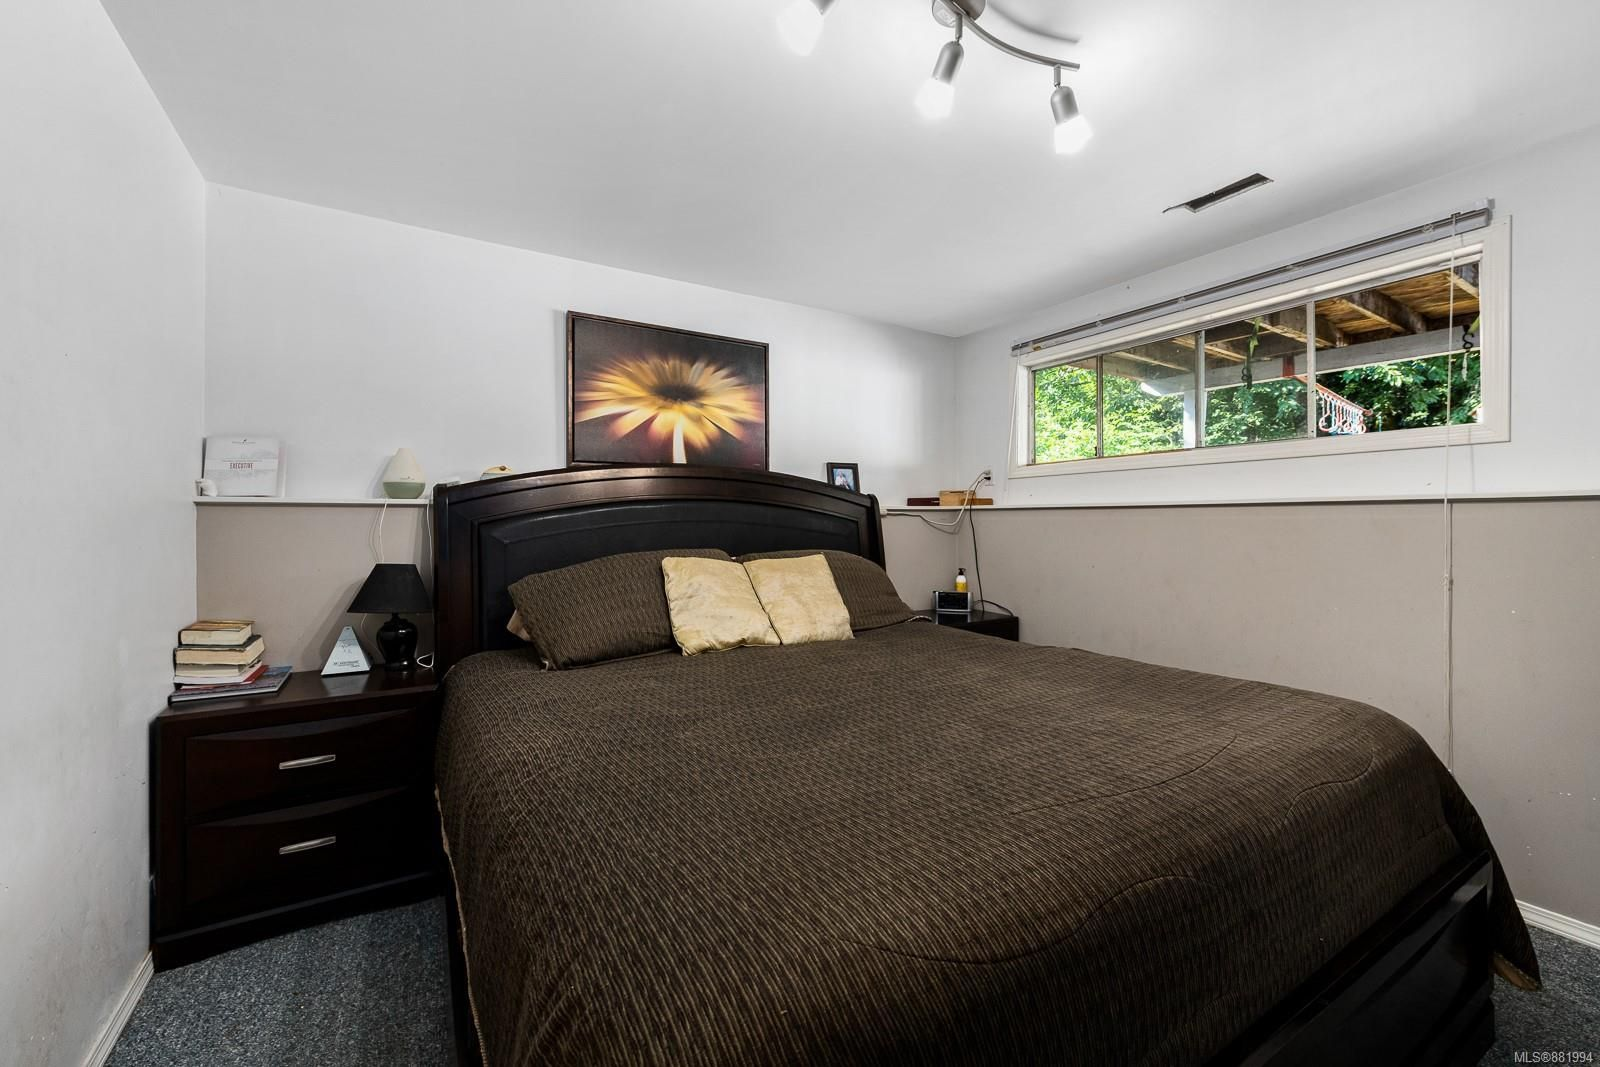 Photo 14: Photos: 1935 Fitzgerald Ave in : CV Courtenay City House for sale (Comox Valley)  : MLS®# 881994